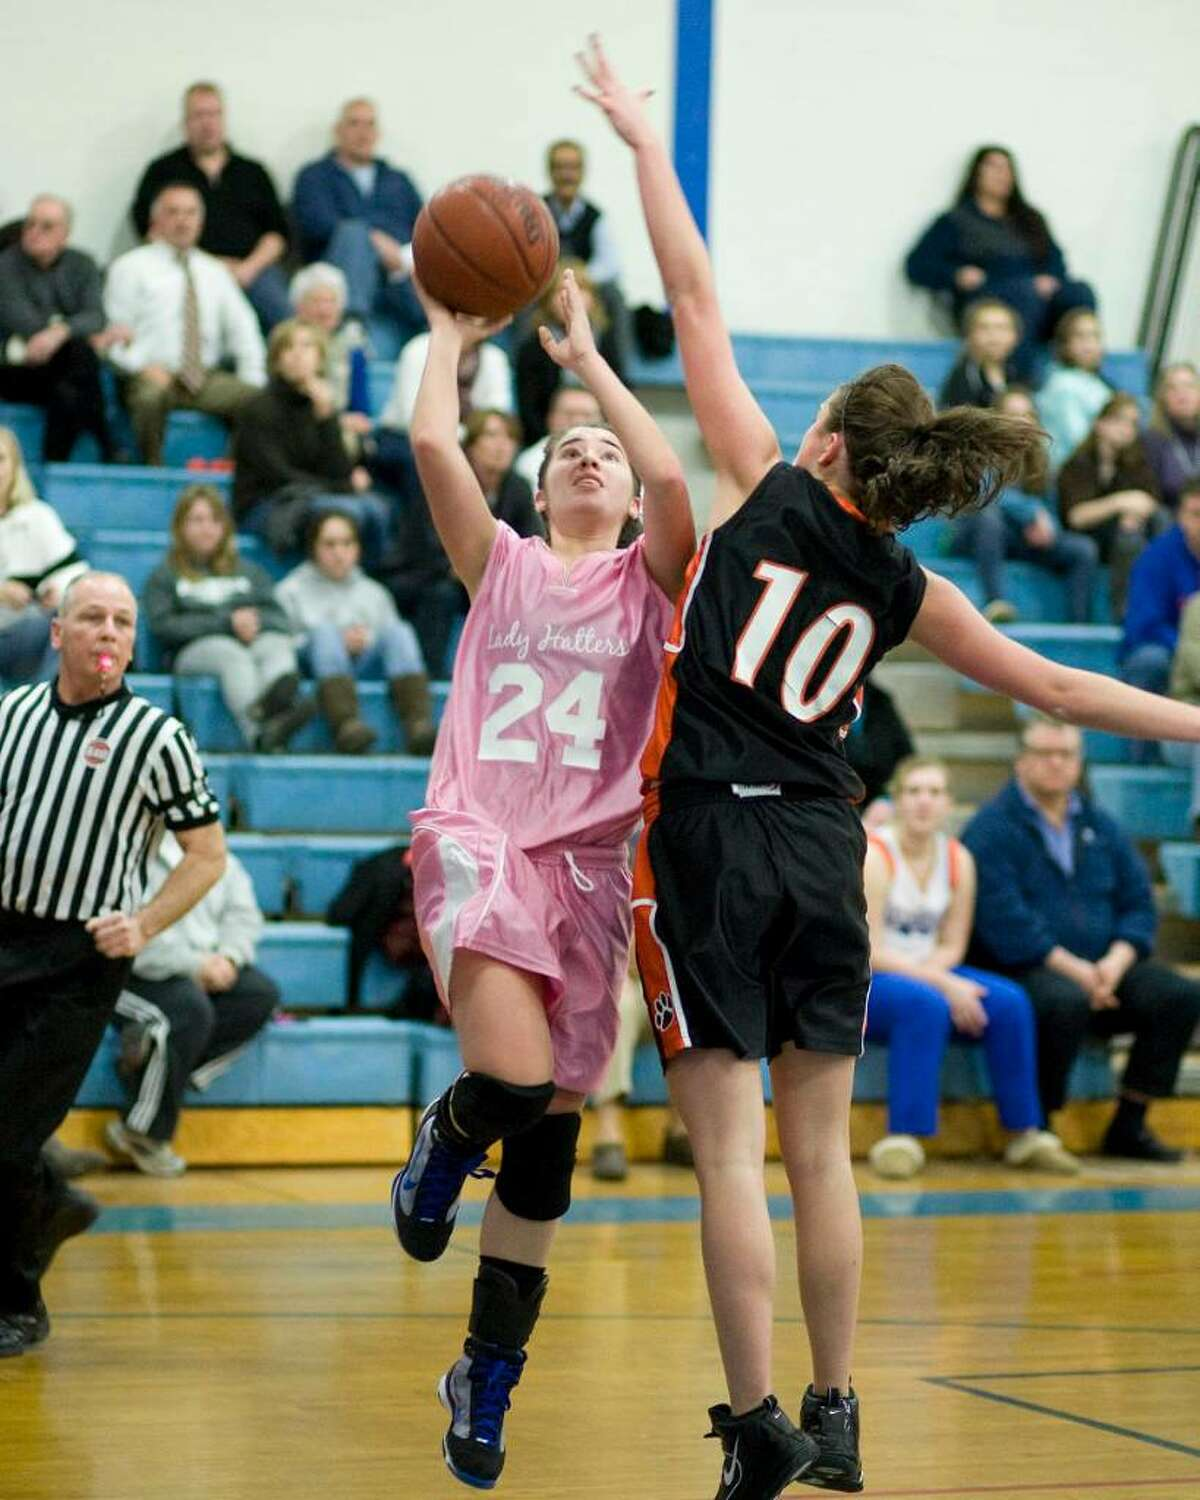 Danbury's Allison Kornhaas (24) drives to the basket while Ridgefield defender Kathryn Cholko goes for the block during their FCIAC game Tuesday night at Danbury High.